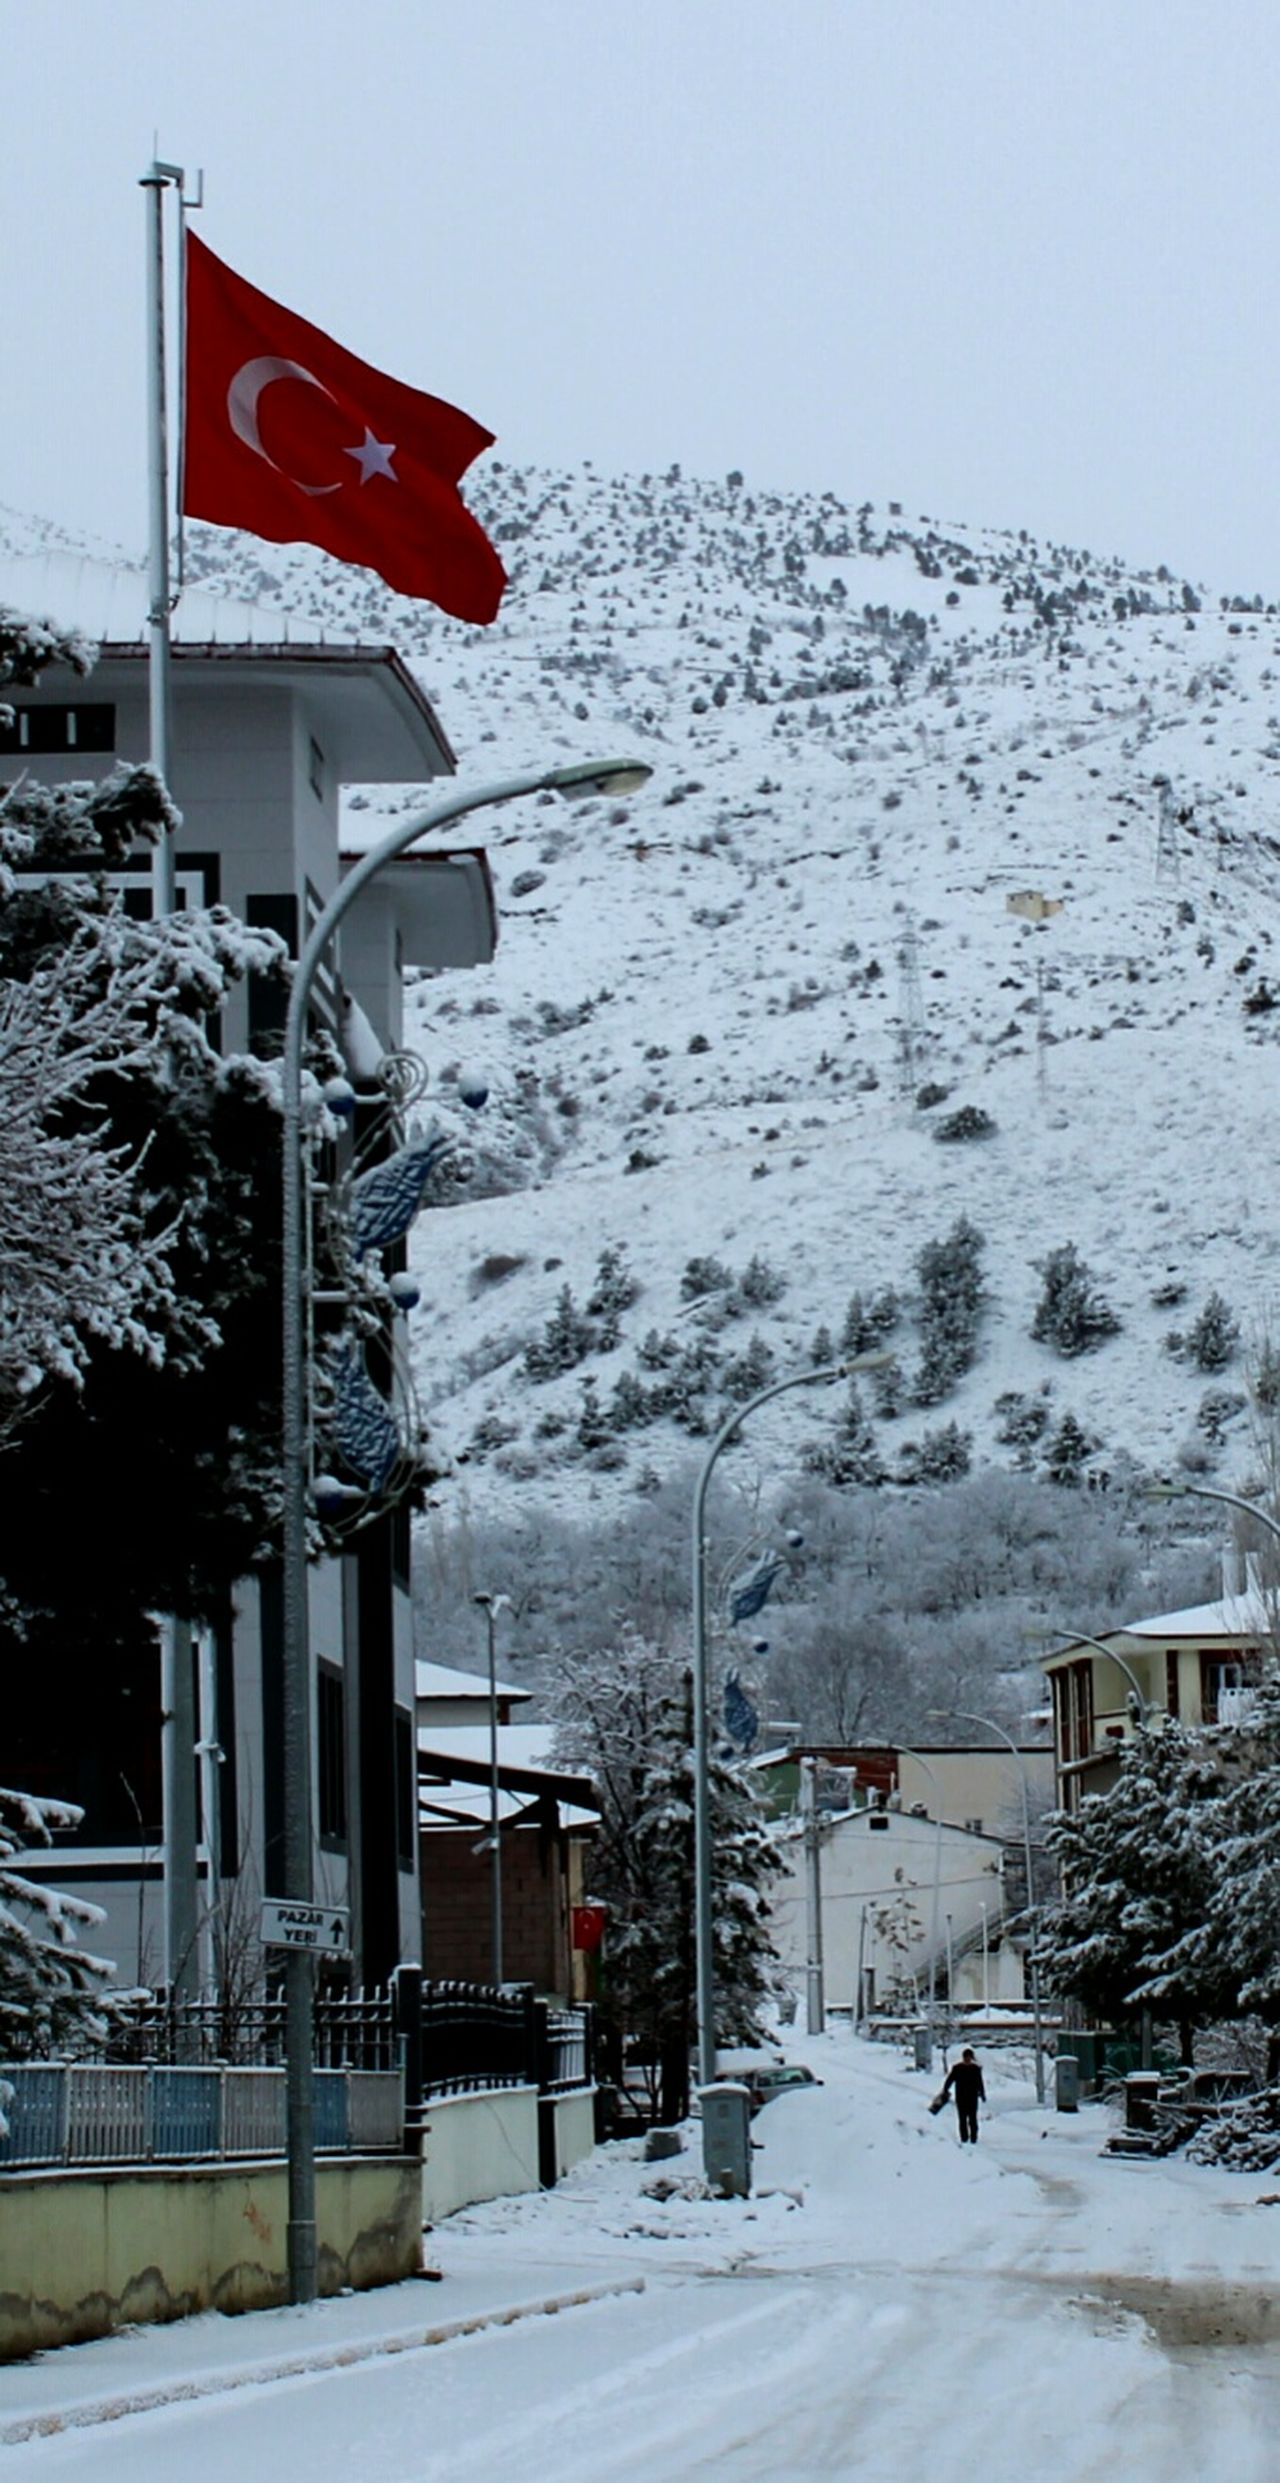 Kar Beyaz Huzur Manzara Doğa Sehir Doğal Güzellik şanlı Bayrak Canonphotography Canon EOS 600D White Snow Outdoors City Landscape Cityscape Mountain Winter Beauty In Nature EyeEm Gallery EyeEmBestPics EyeEm Best Edits Nature Photography EyeEm Nature Lover